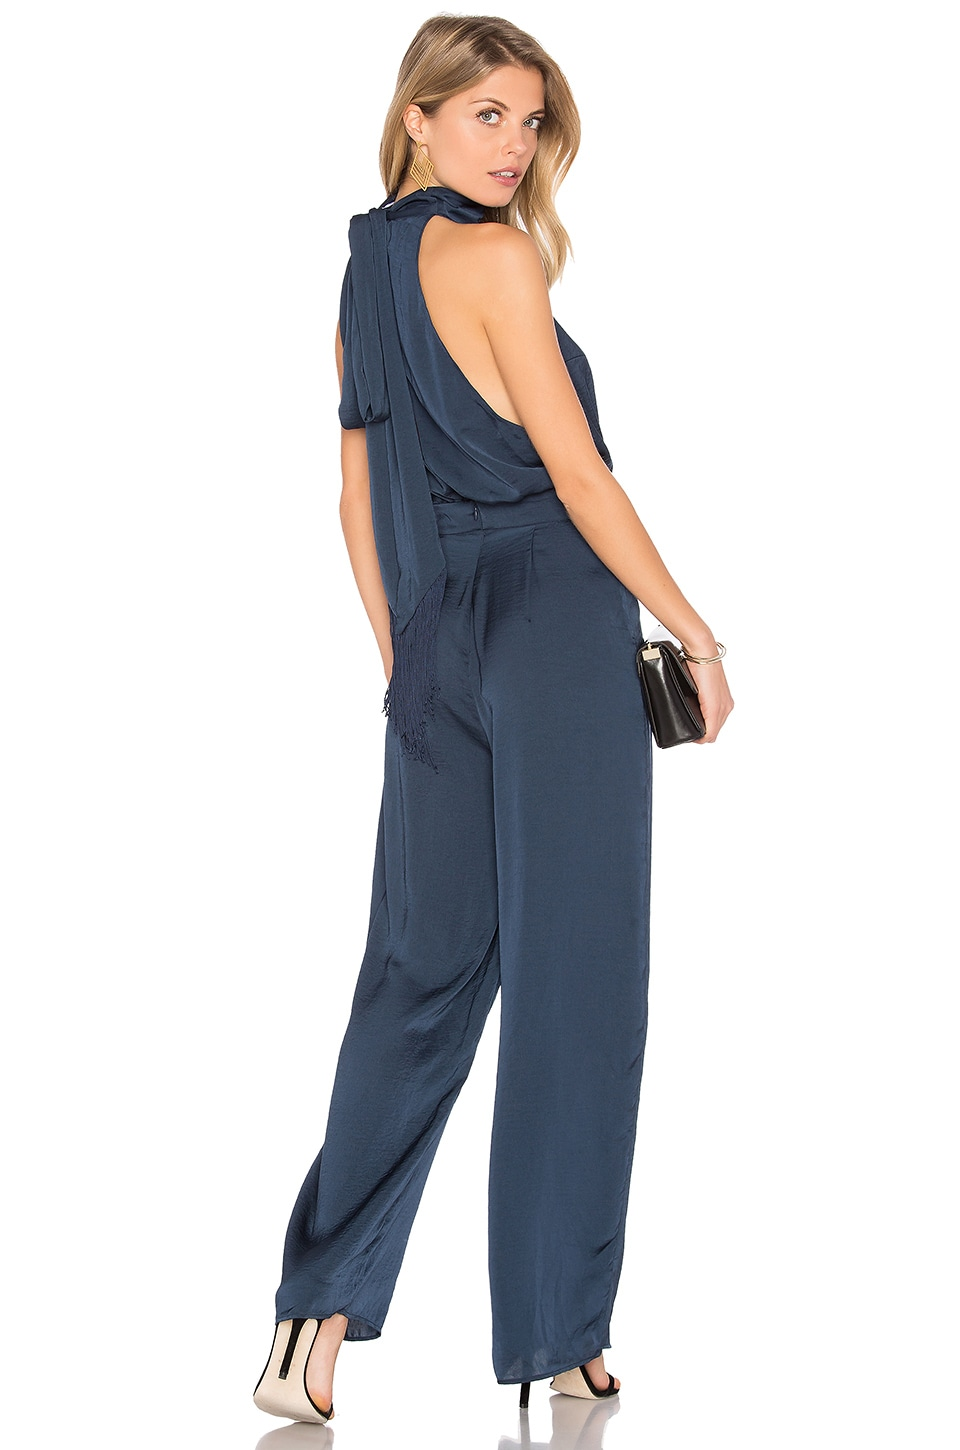 Finders Keepers Cyrus Jumpsuit in Charcoal